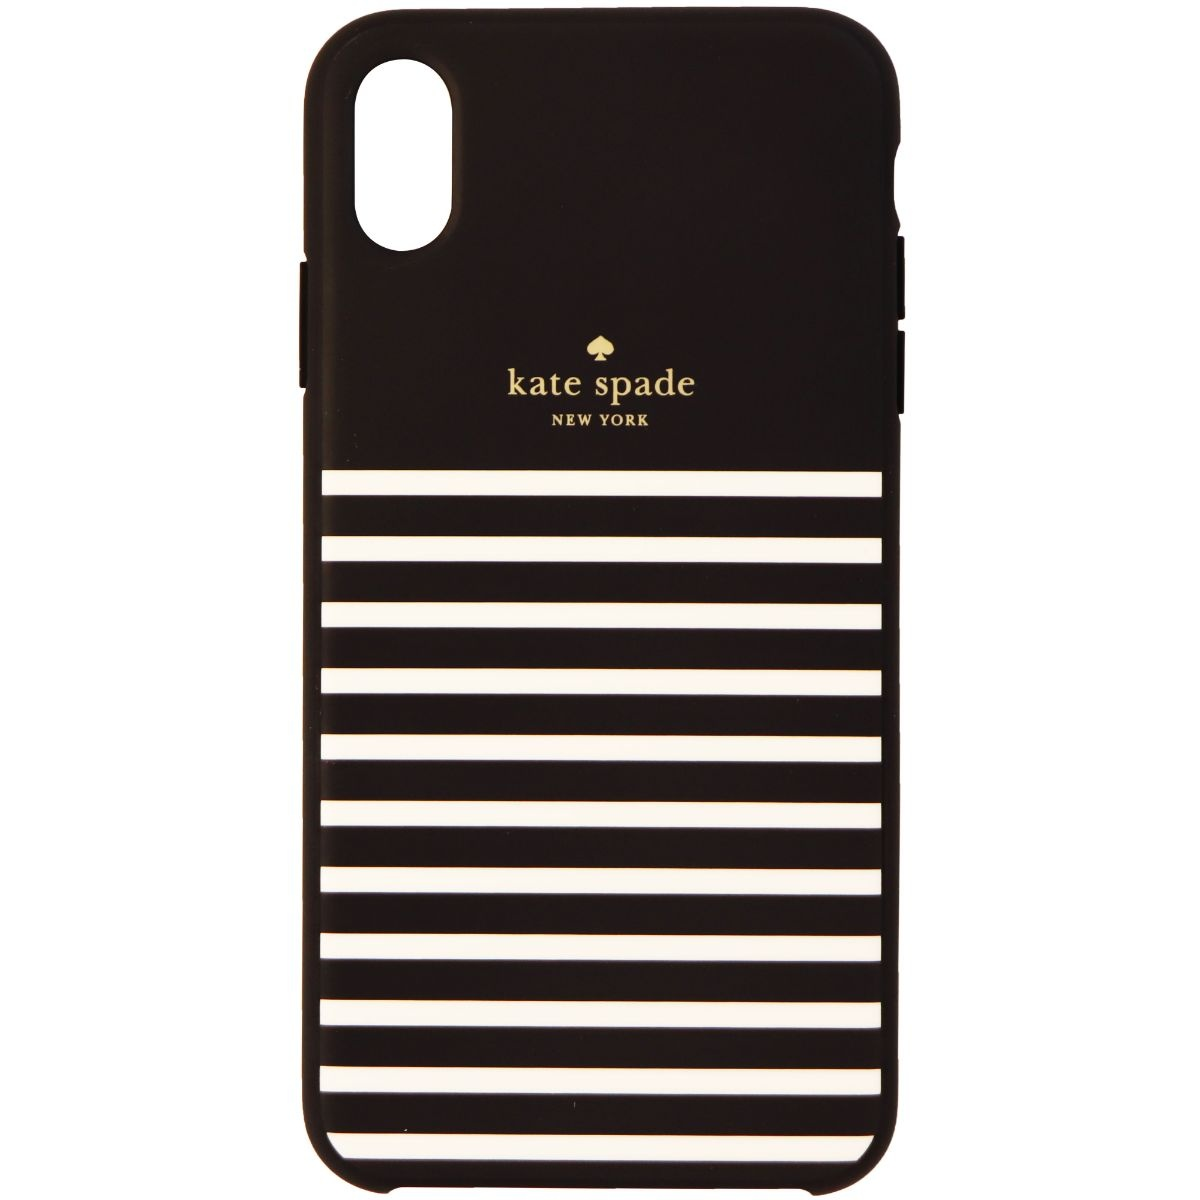 Kate Spade Soft Touch Case for Apple iPhone XS Max - Feeder Stripe Black/Cream